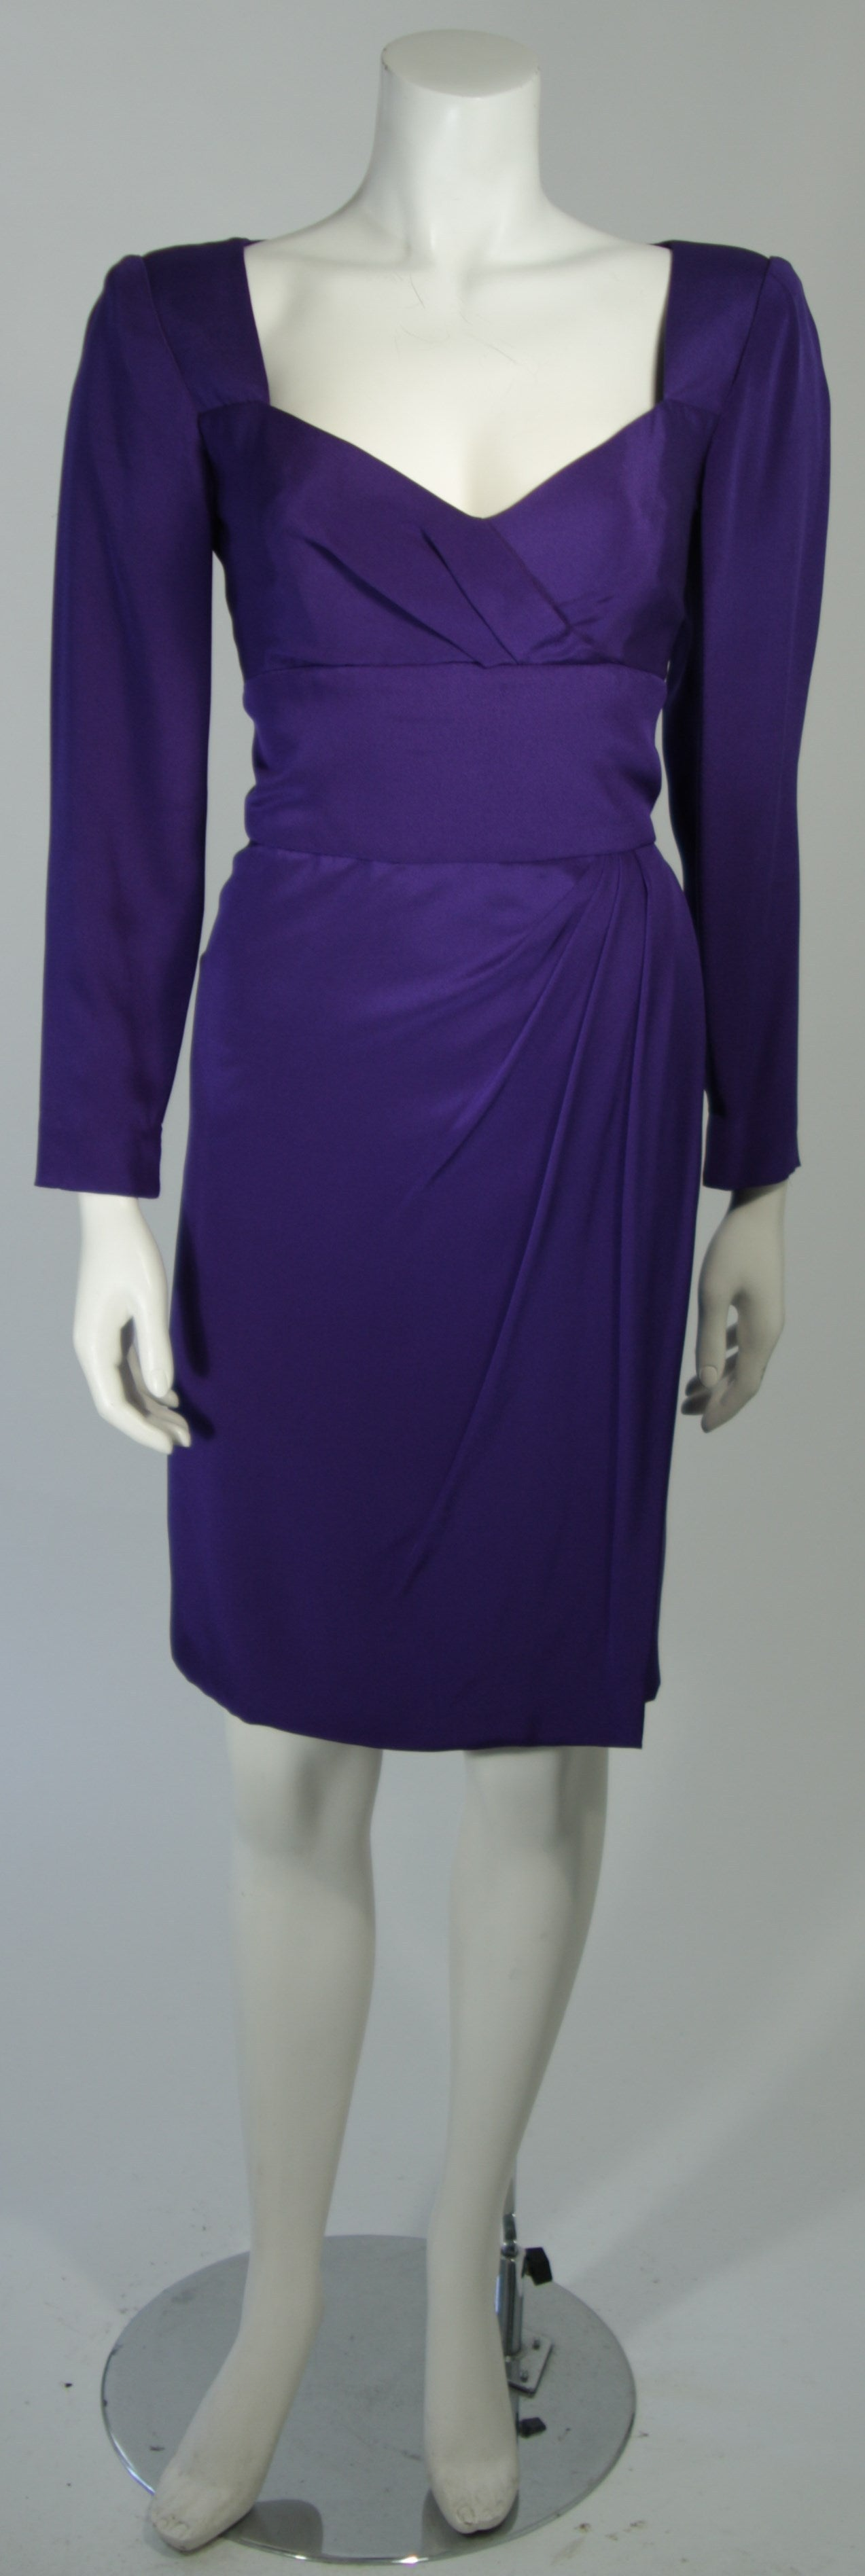 This Travilla cocktail dress is fashioned from a wonderful purple silk. The dress features a v-neckline, draping at the hip and bust, with long sleeves. There is a center back zipper. In excellent vintage condition.  **Please cross-reference